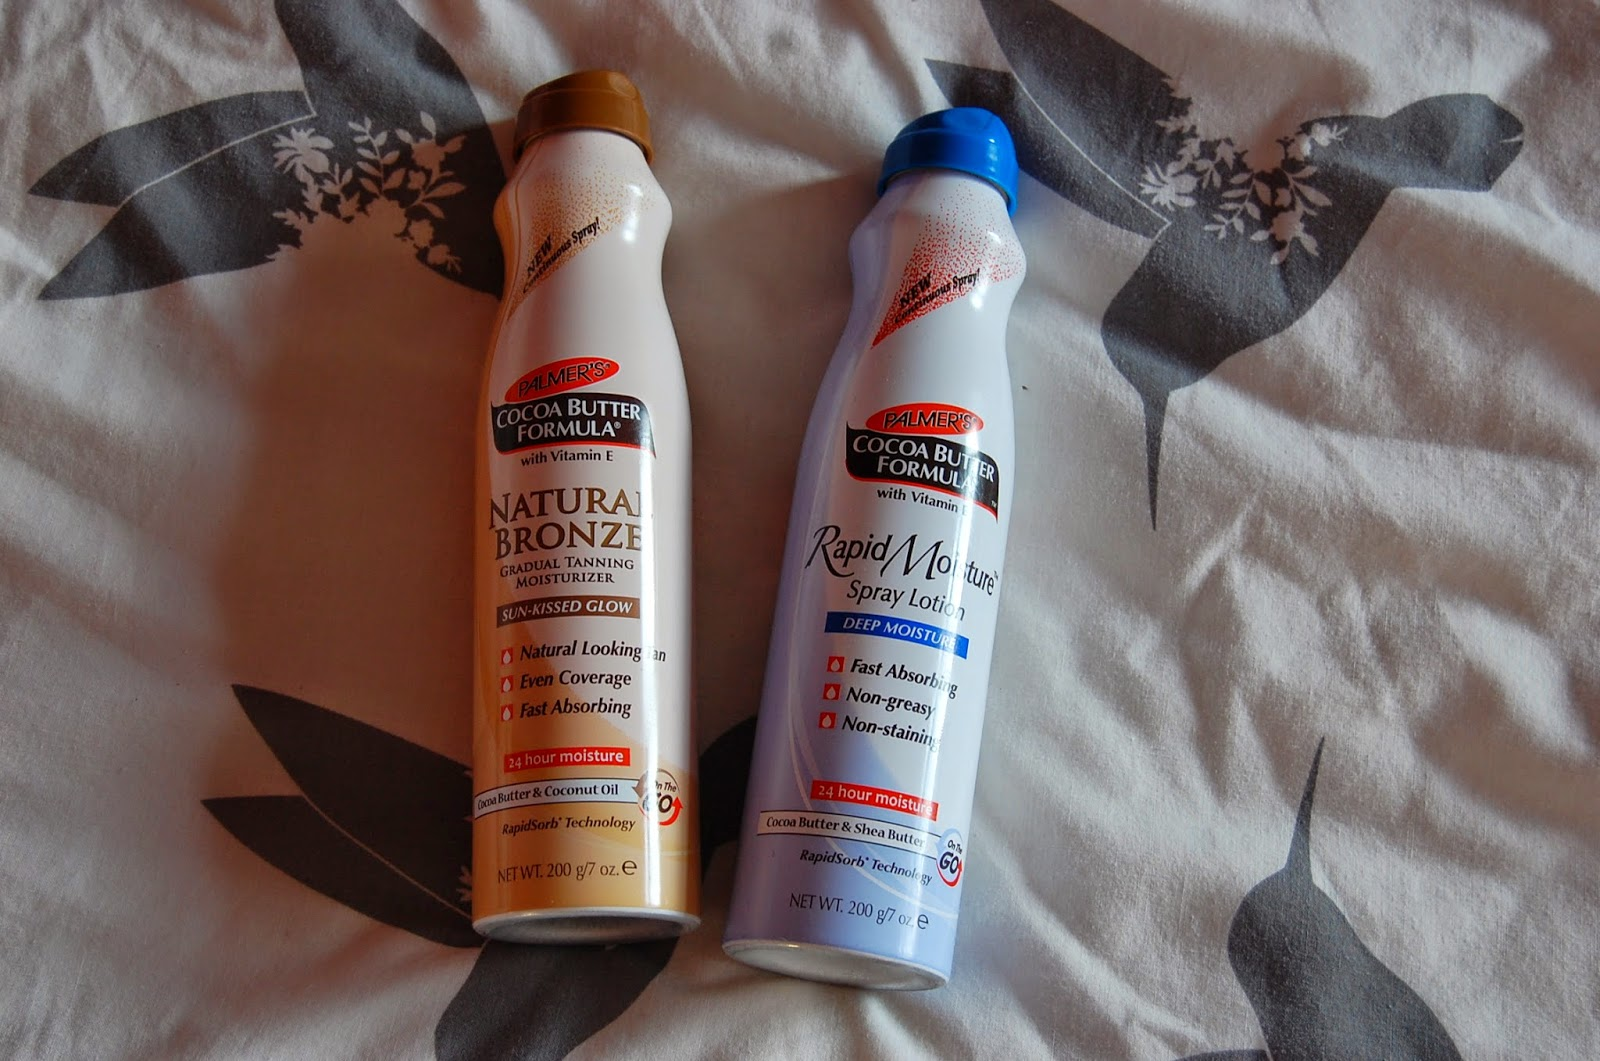 Palmer's Cocoa Butter spray